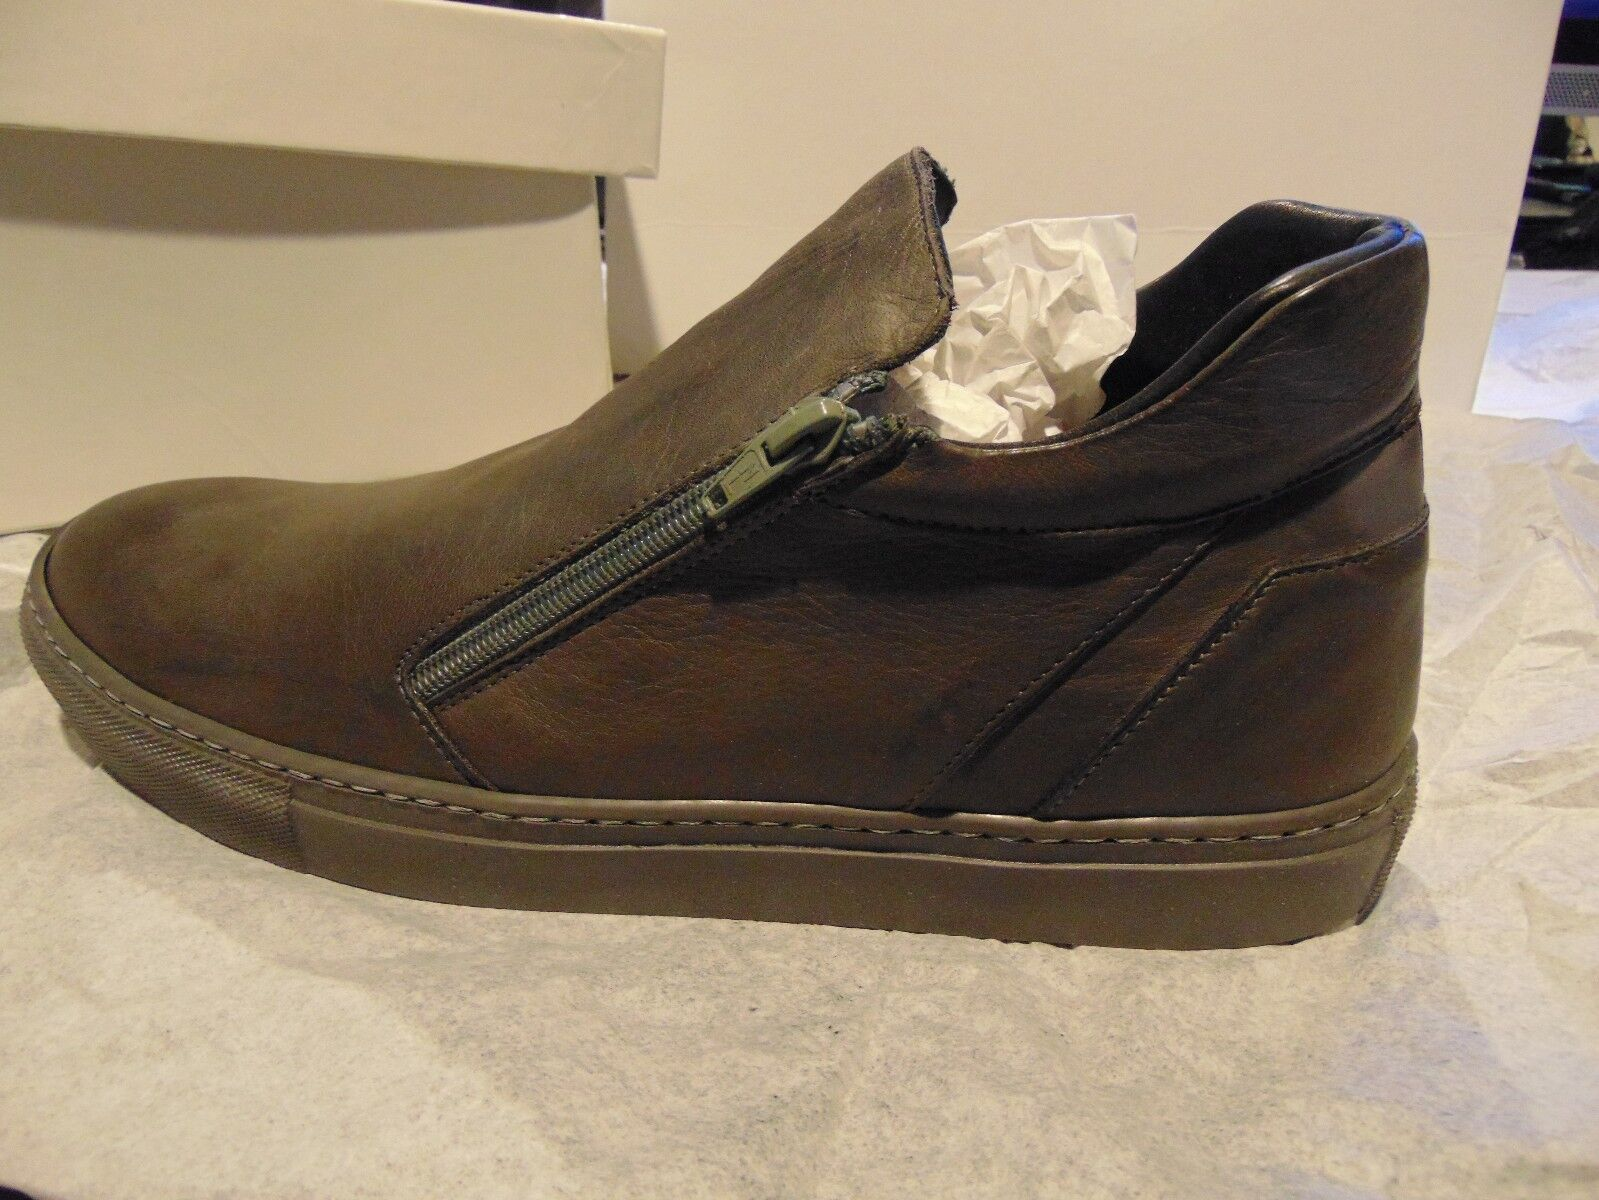 DESIGNER  PIERRE DARRE  ITALY LEATHER SHOES, SIZE EU-44, US-11. STUNNING